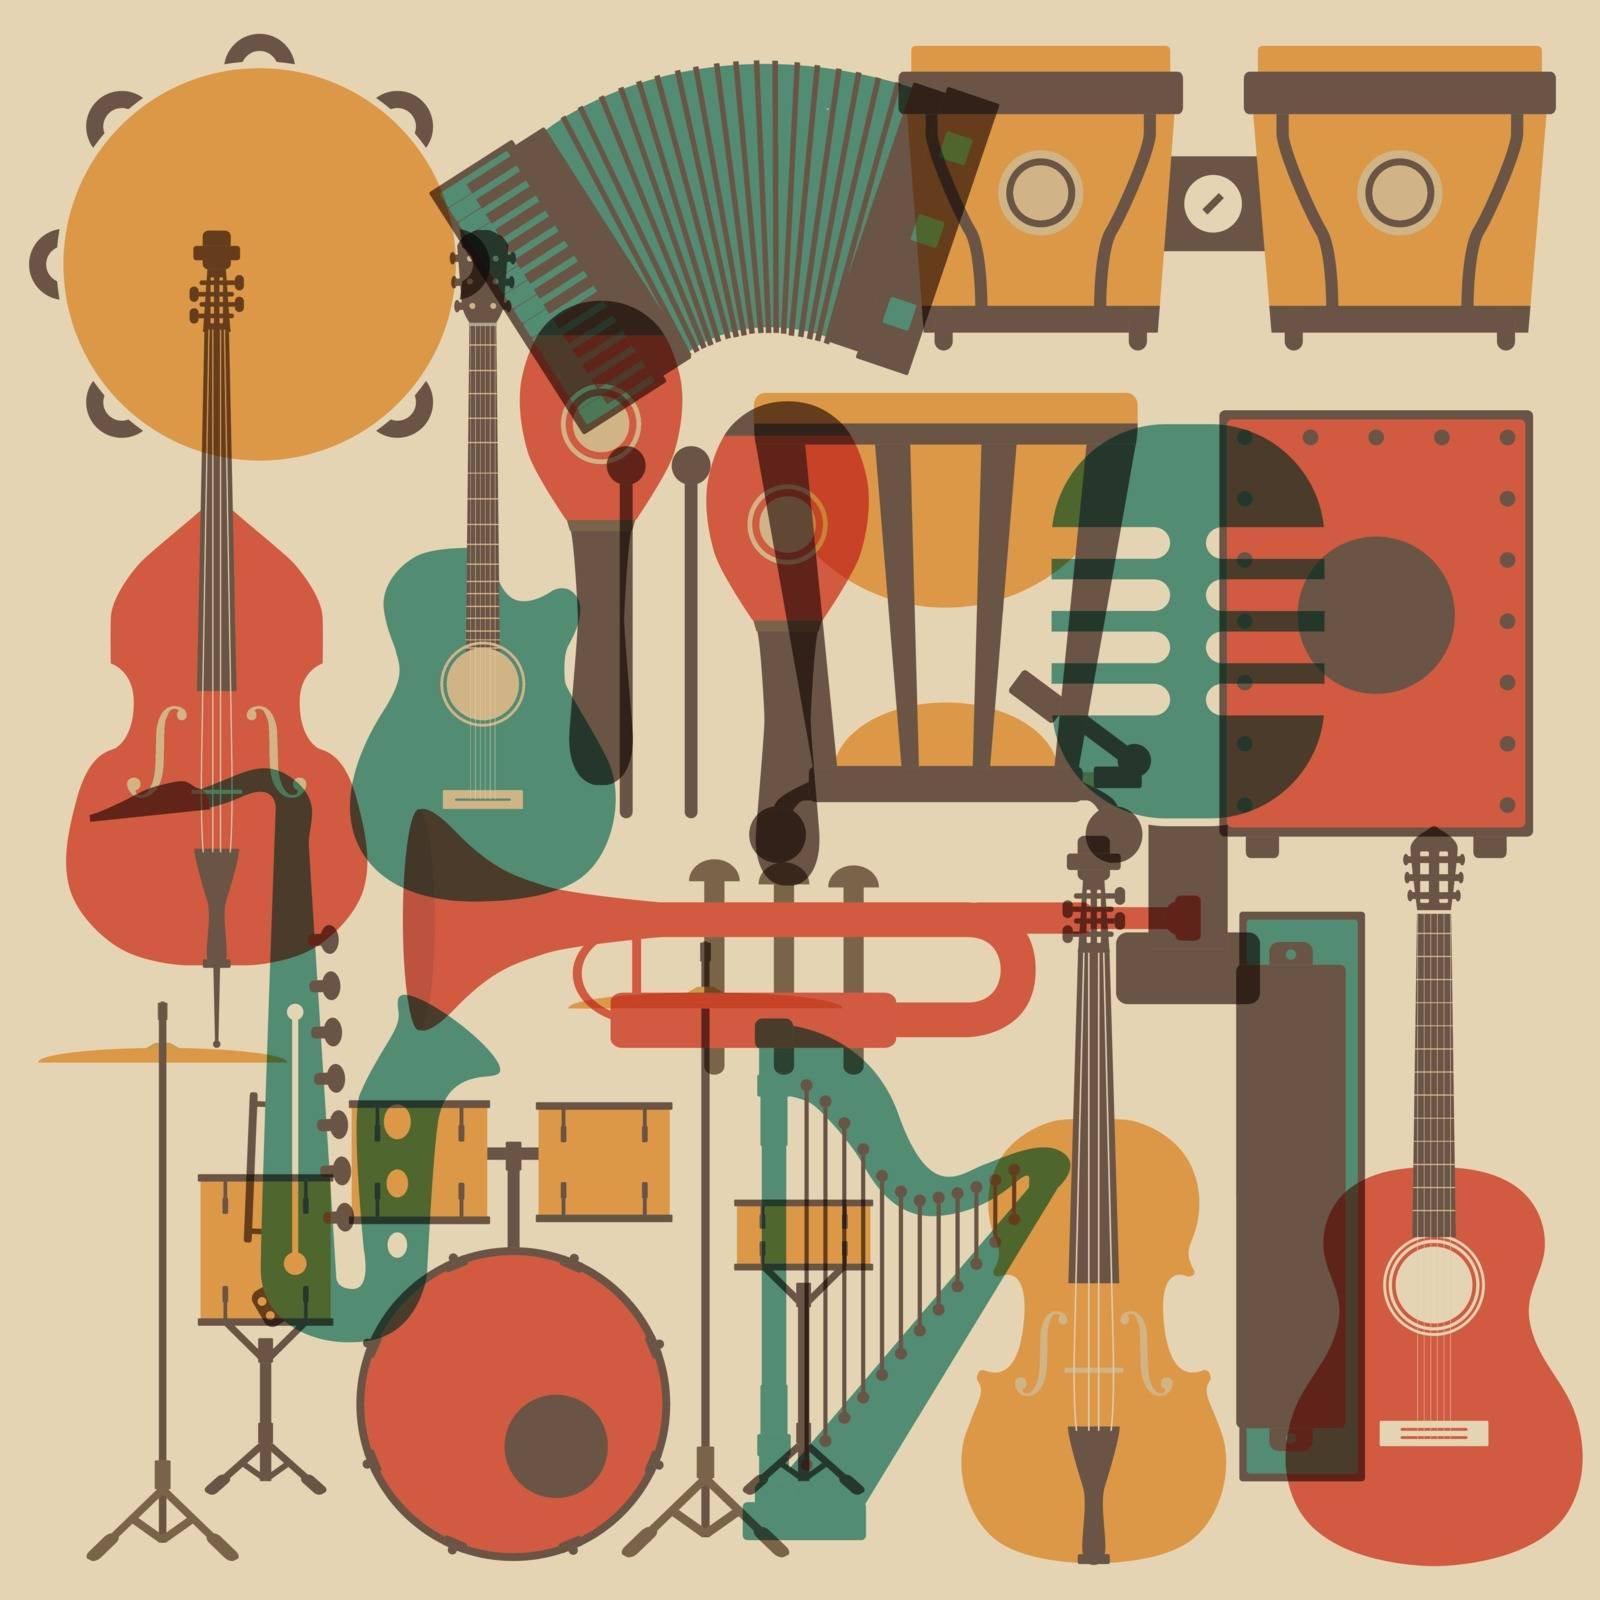 set of abstract classical music instrument icon, retro style